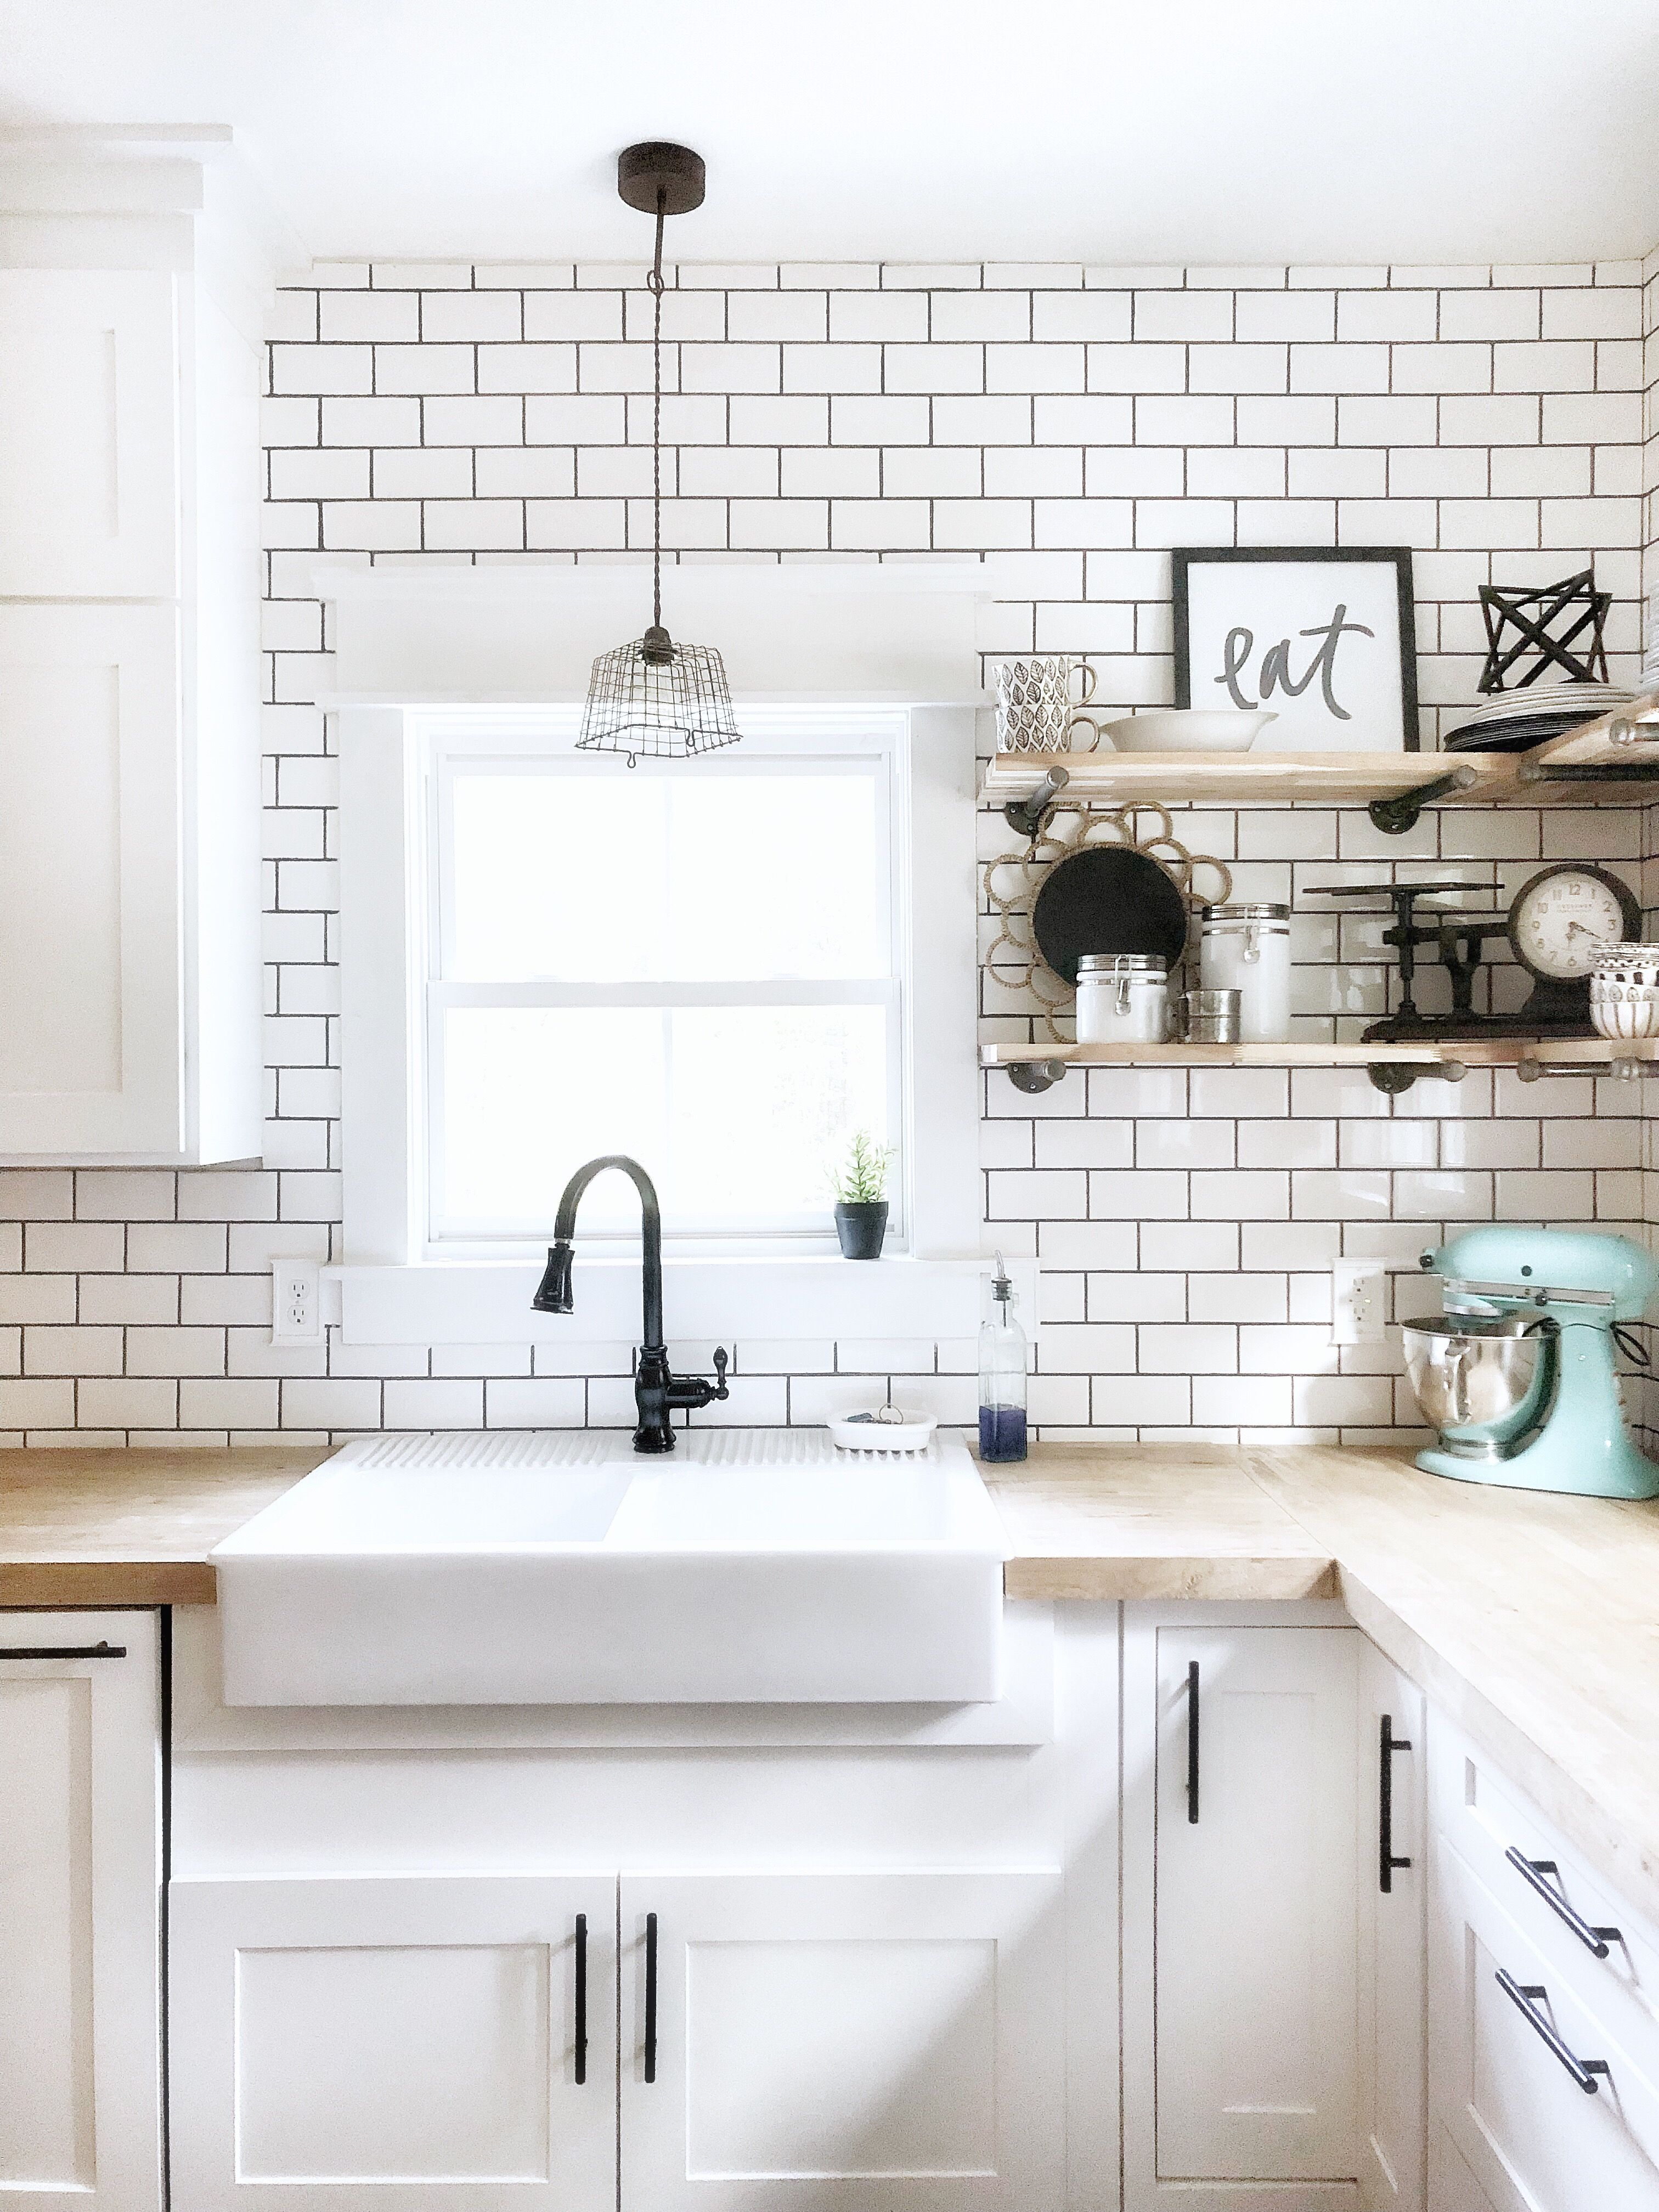 Can you believe this apron front sink is from Ikea!? And